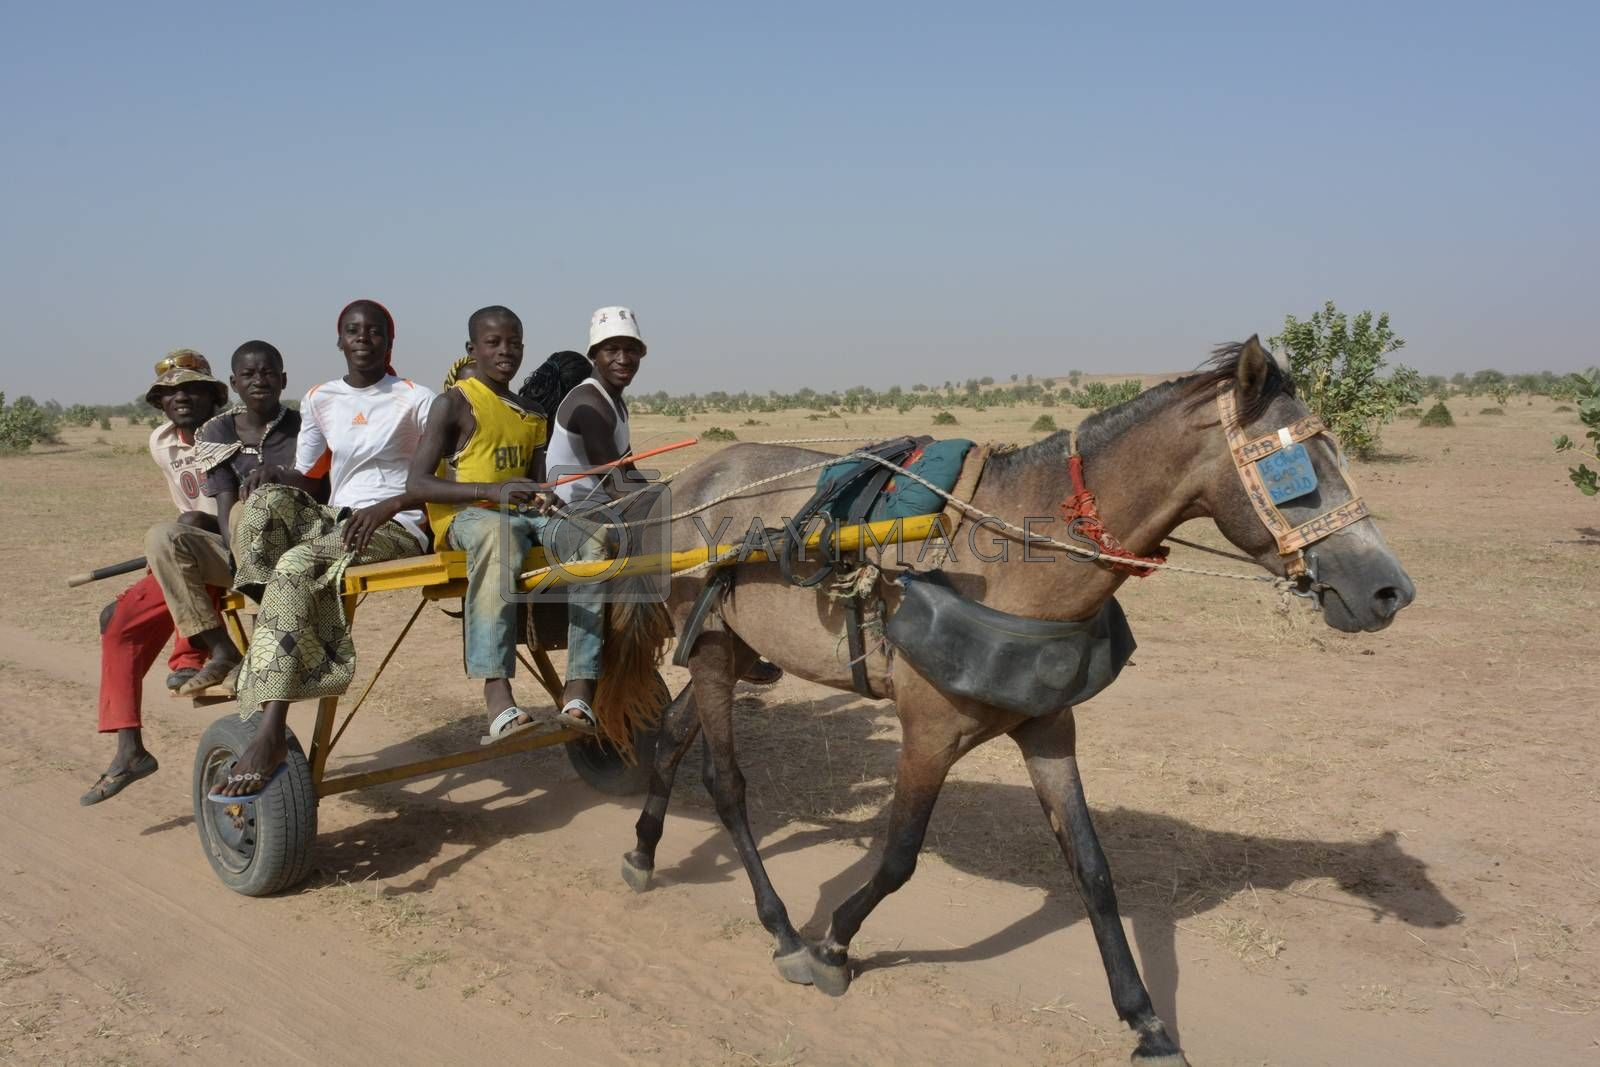 MATAM,SENEGAL-CIRCA NOVEMBER 2013:a group of kids from the Peul tribe uses the horse and carriage as transport in the desert,circa November 2013.